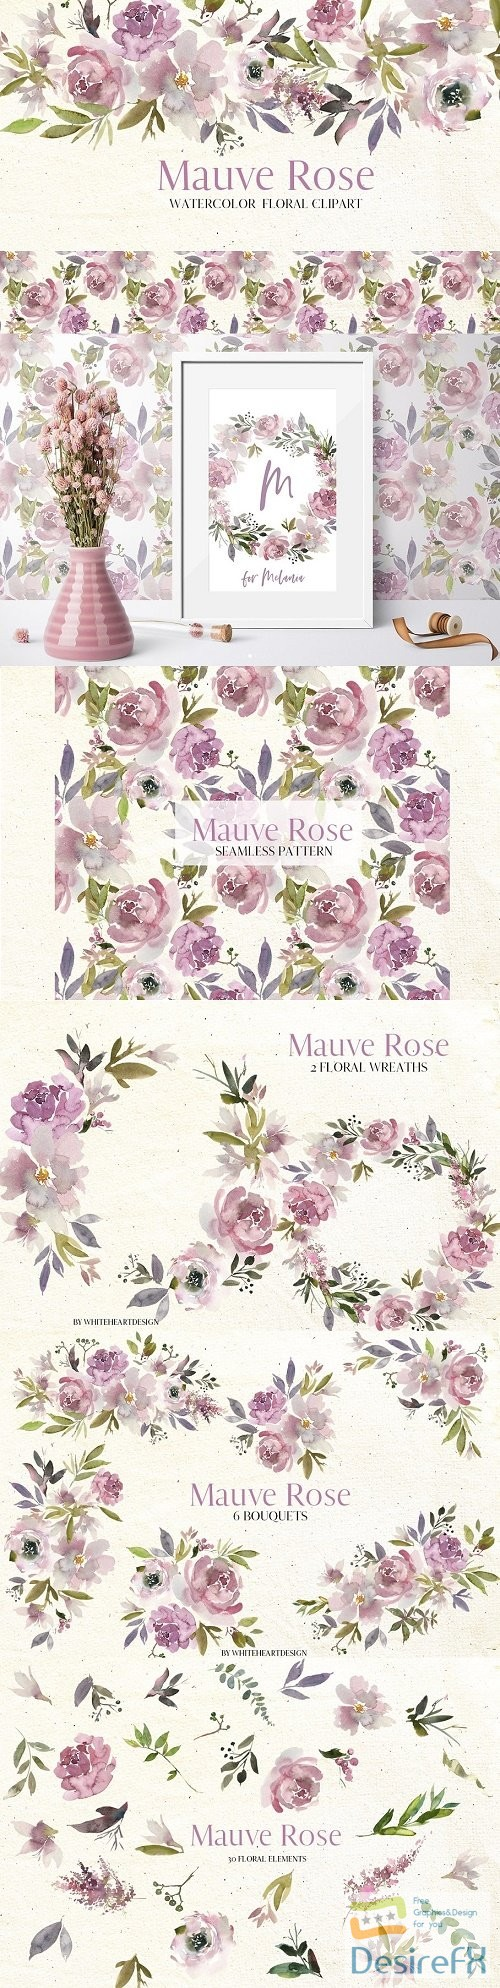 Mauve Rose Watercolor Floral Clipart - 2997079